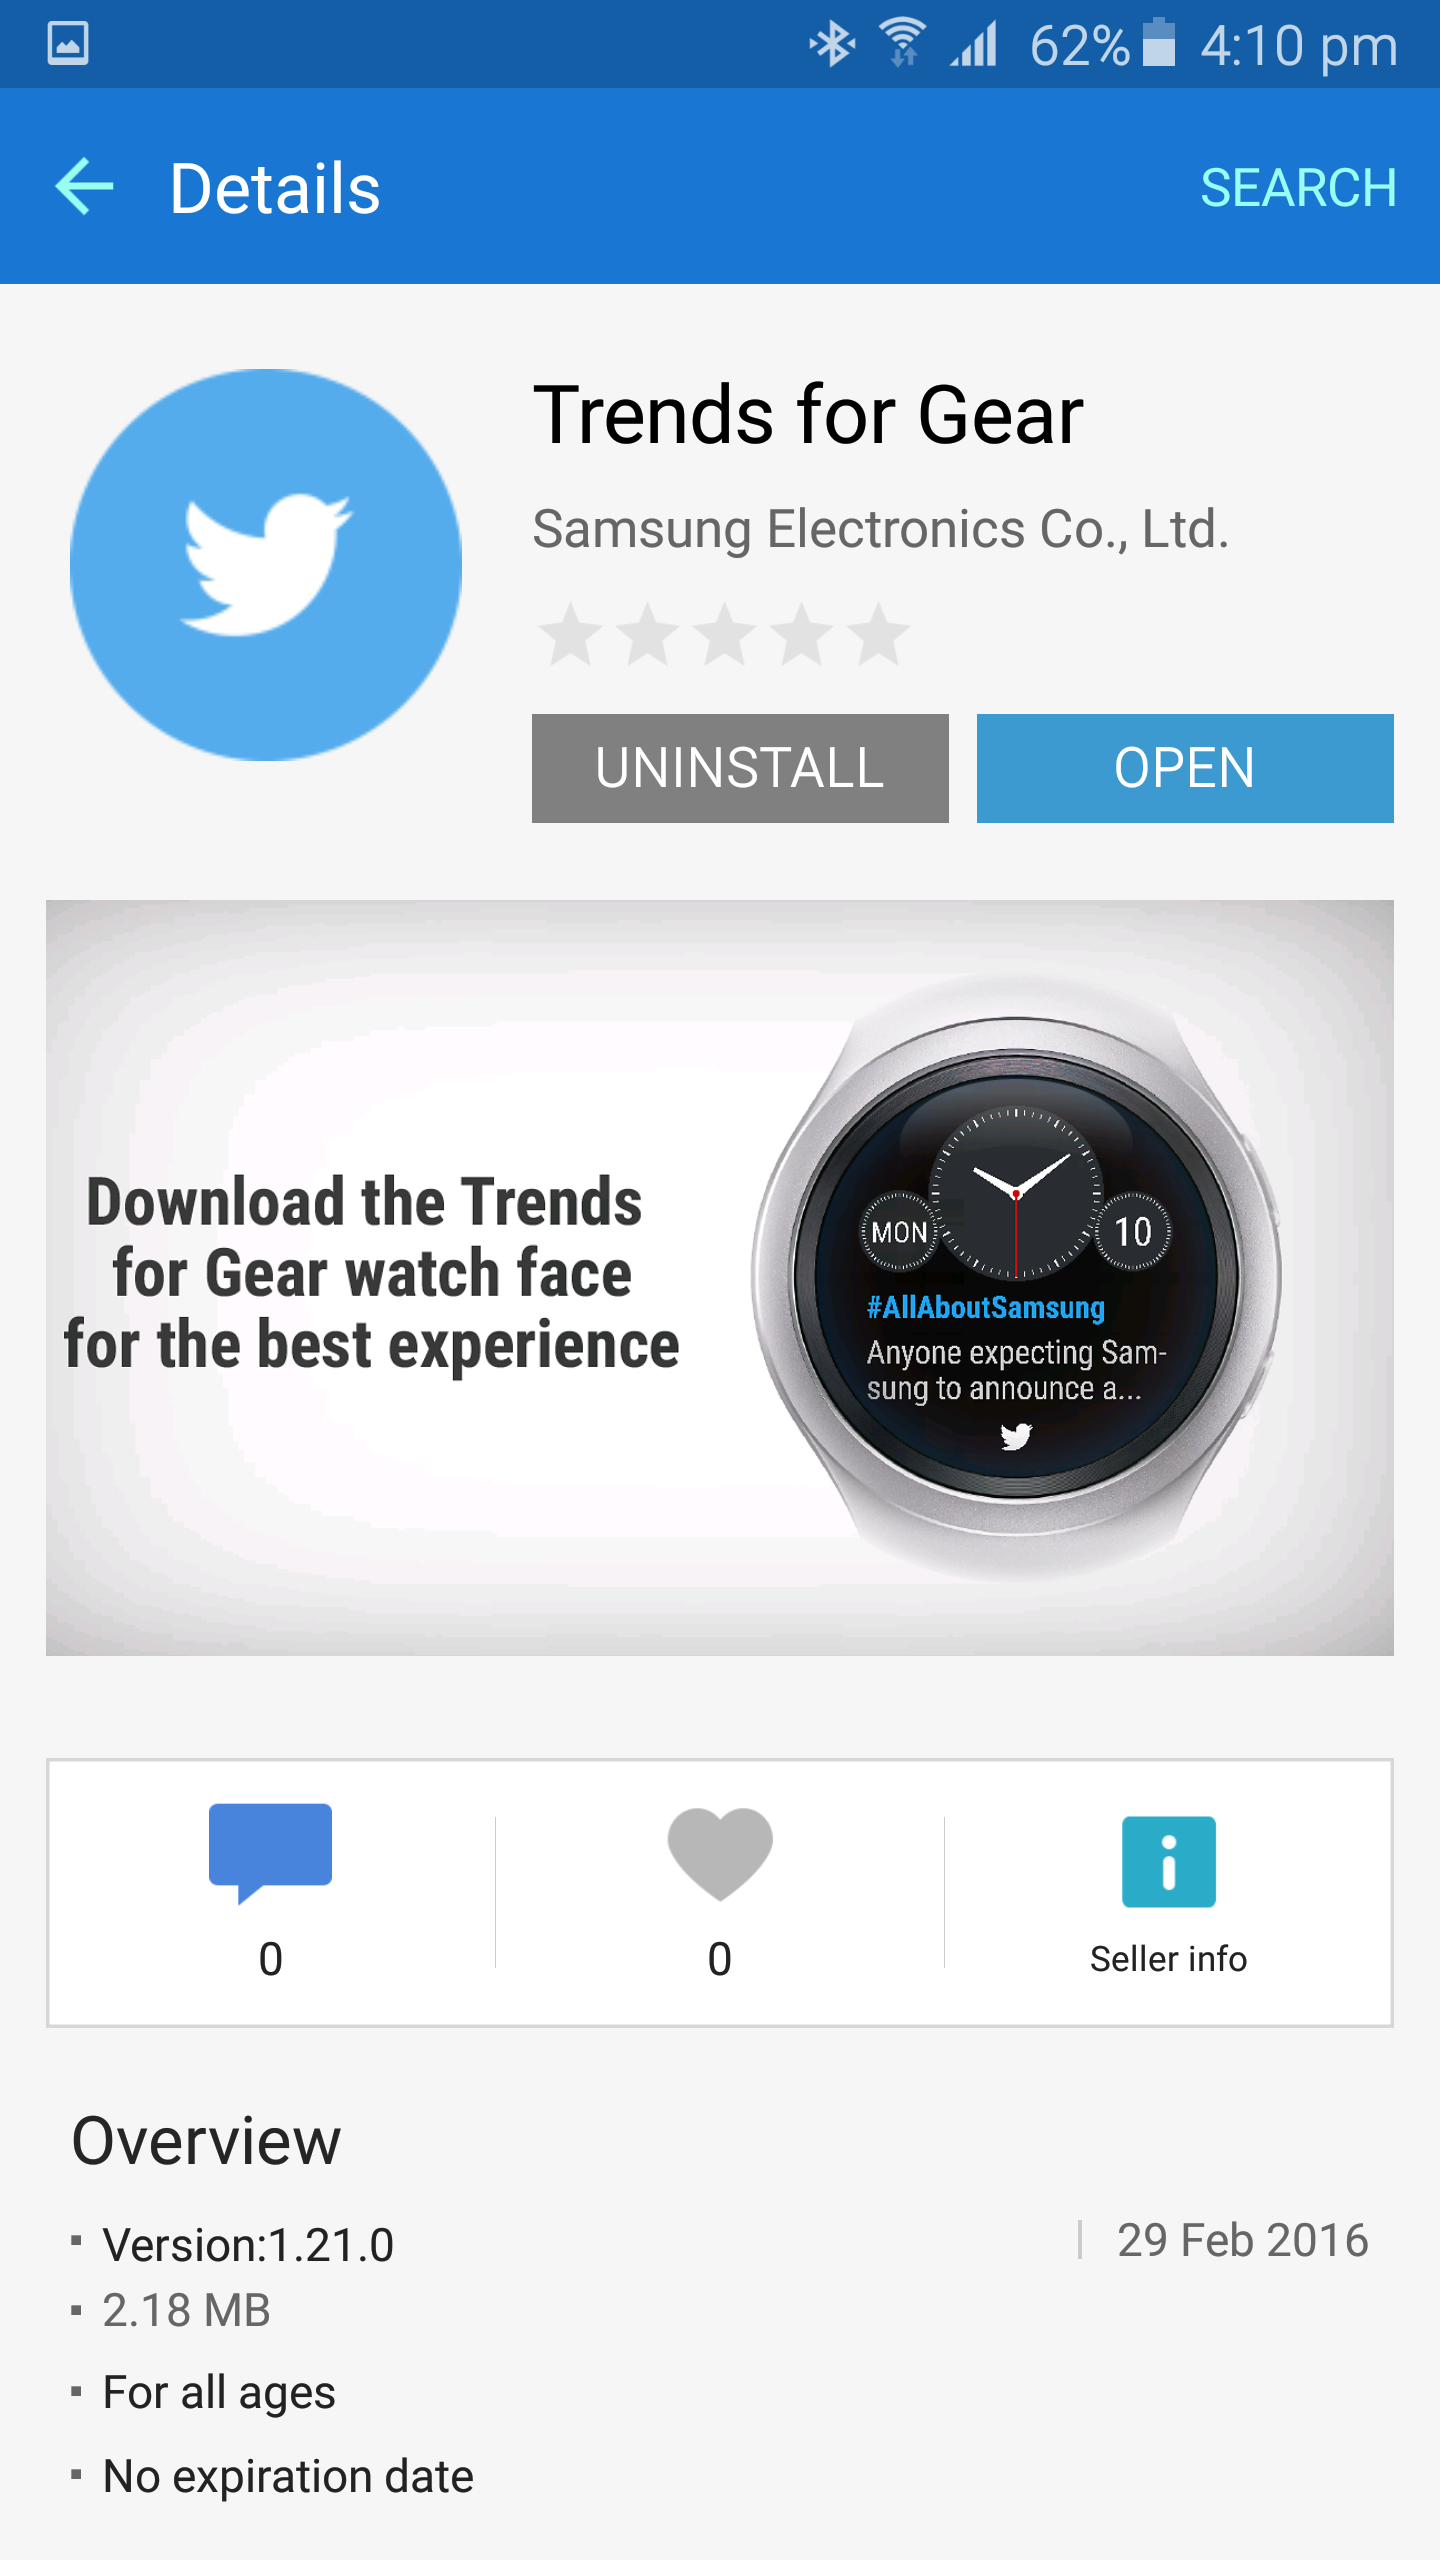 Samsung brings Twitter trends to your wrist with new watch ...